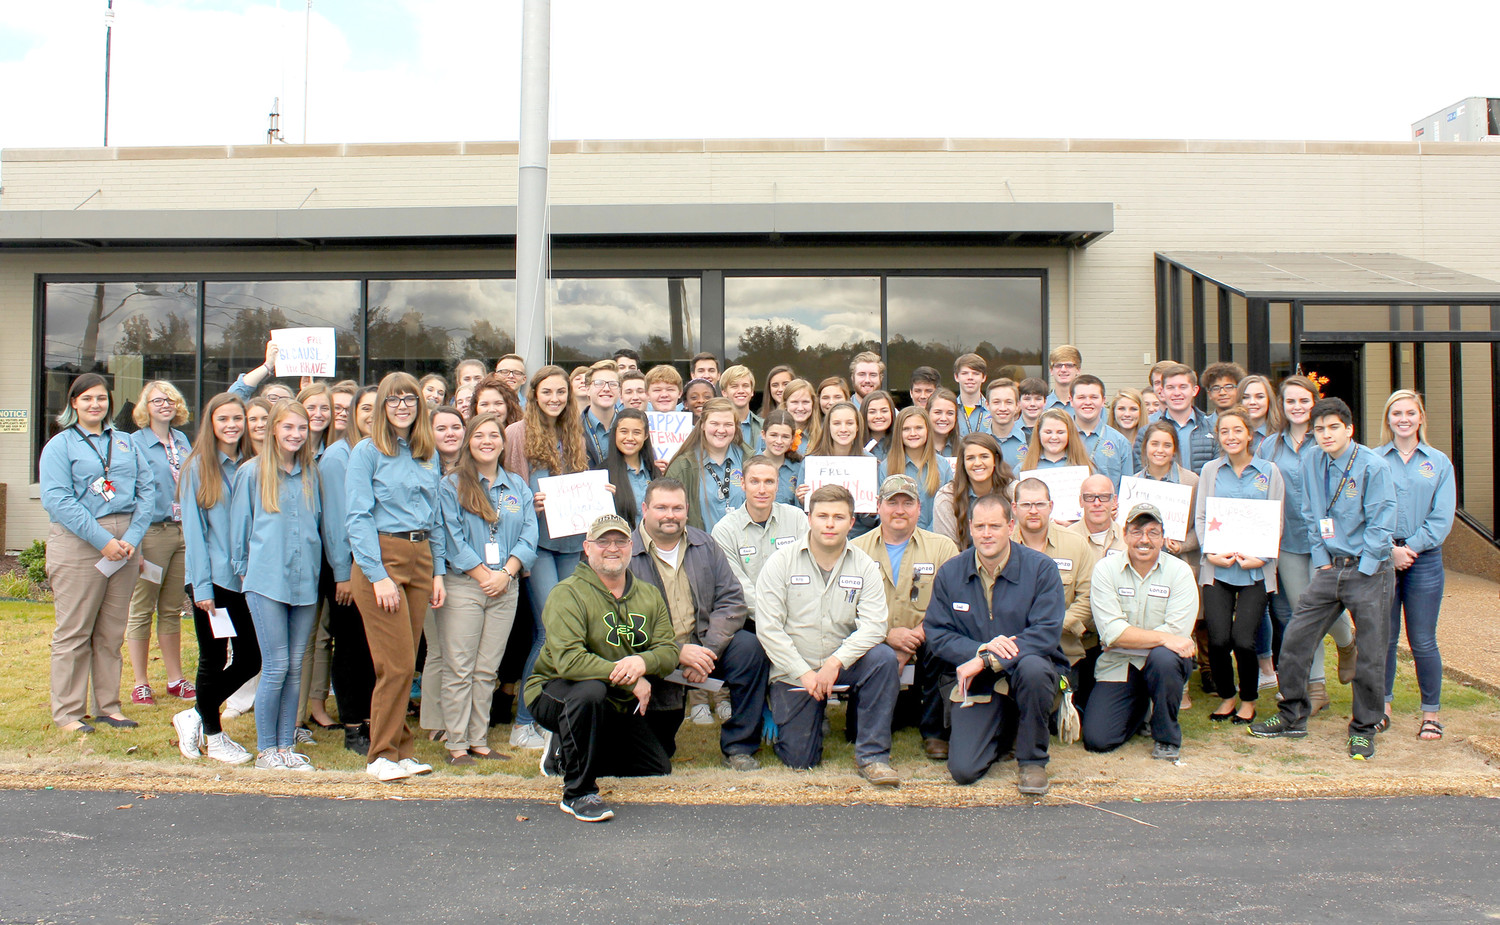 THE STUDENT GOVERNMENT ASSOCIATION of Walker Valley High School recently visited Lonza, in Charleston, to honor staff who are veterans for Veterans Day. Joining them, kneeling in front, are just nine of the veterans Lonza employs.